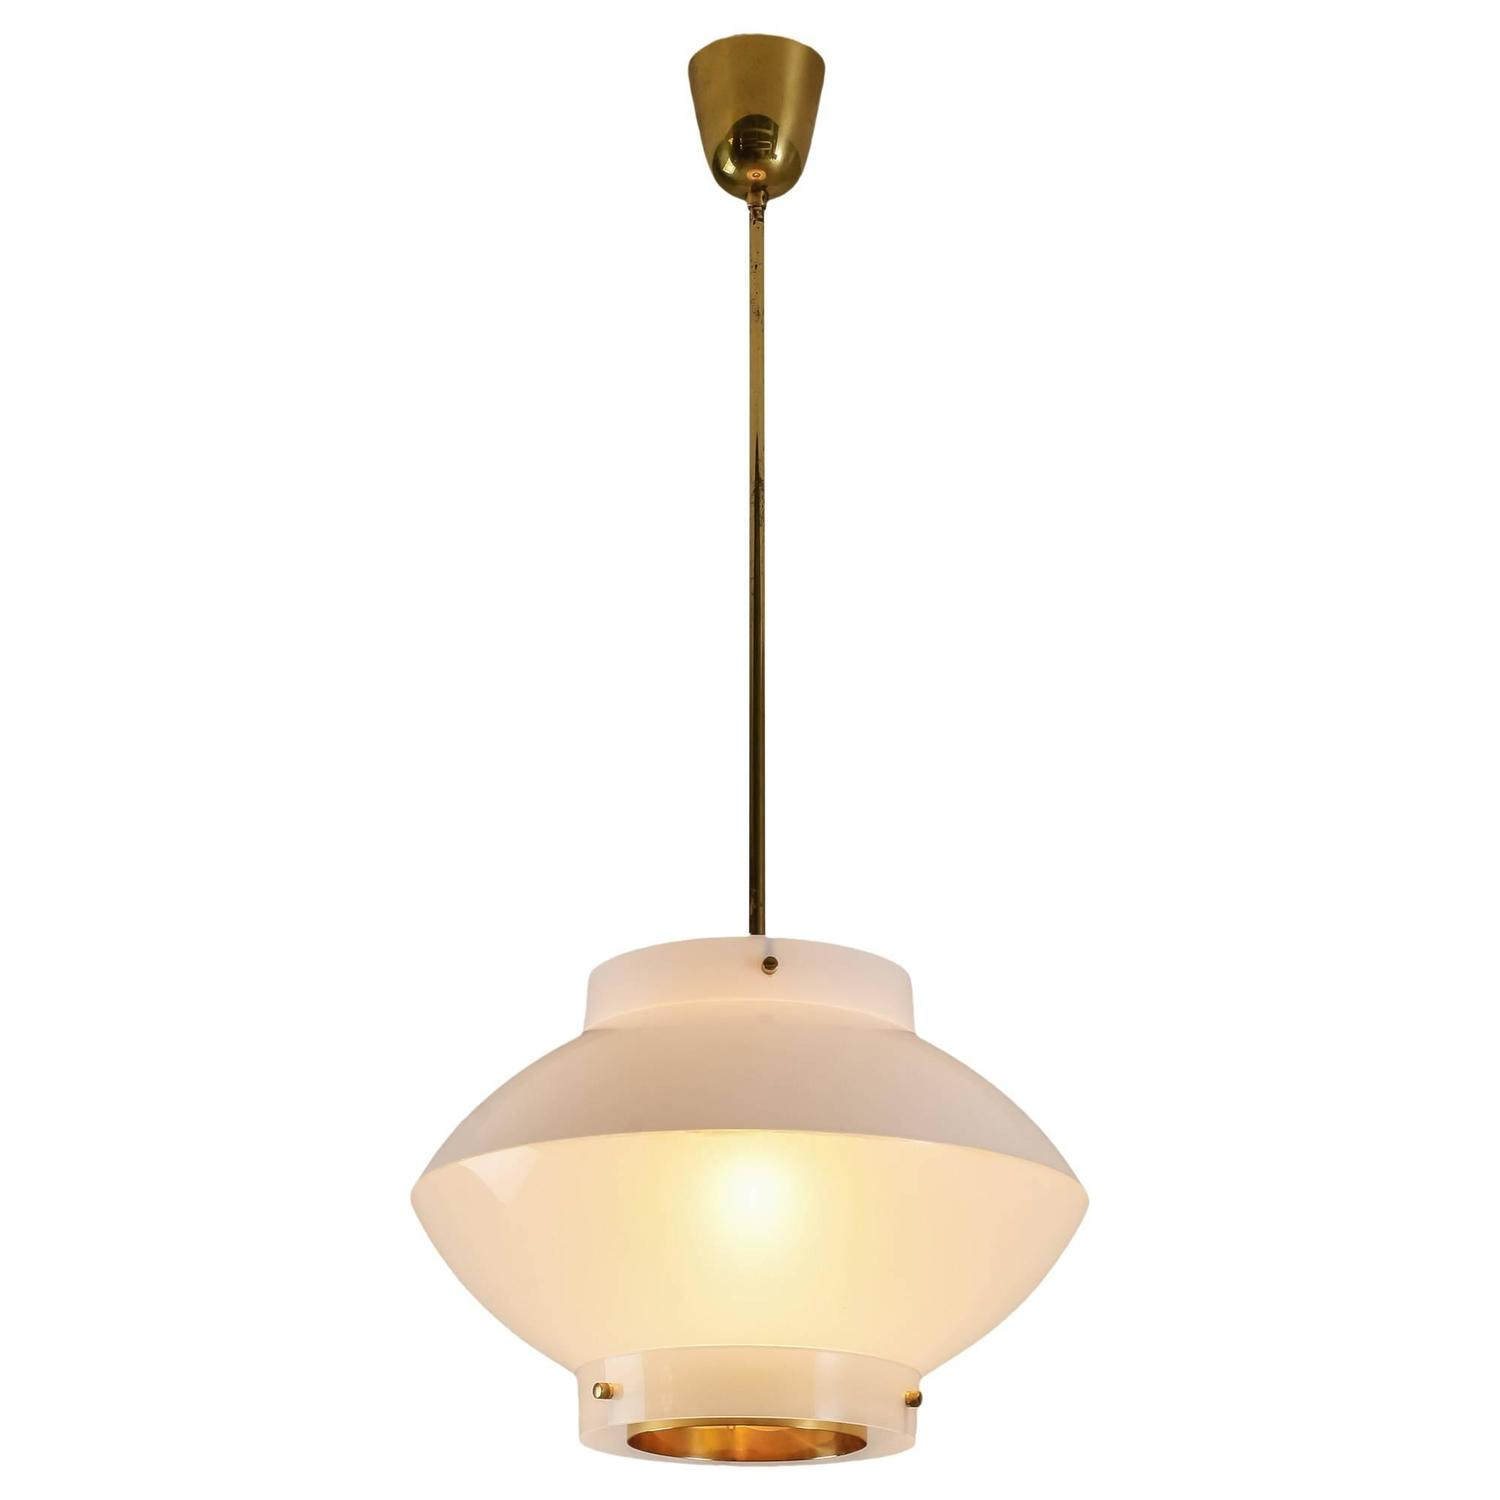 adjustable light today product brass lighting shipping safavieh home inch lamp garden pendant overstock darby small free